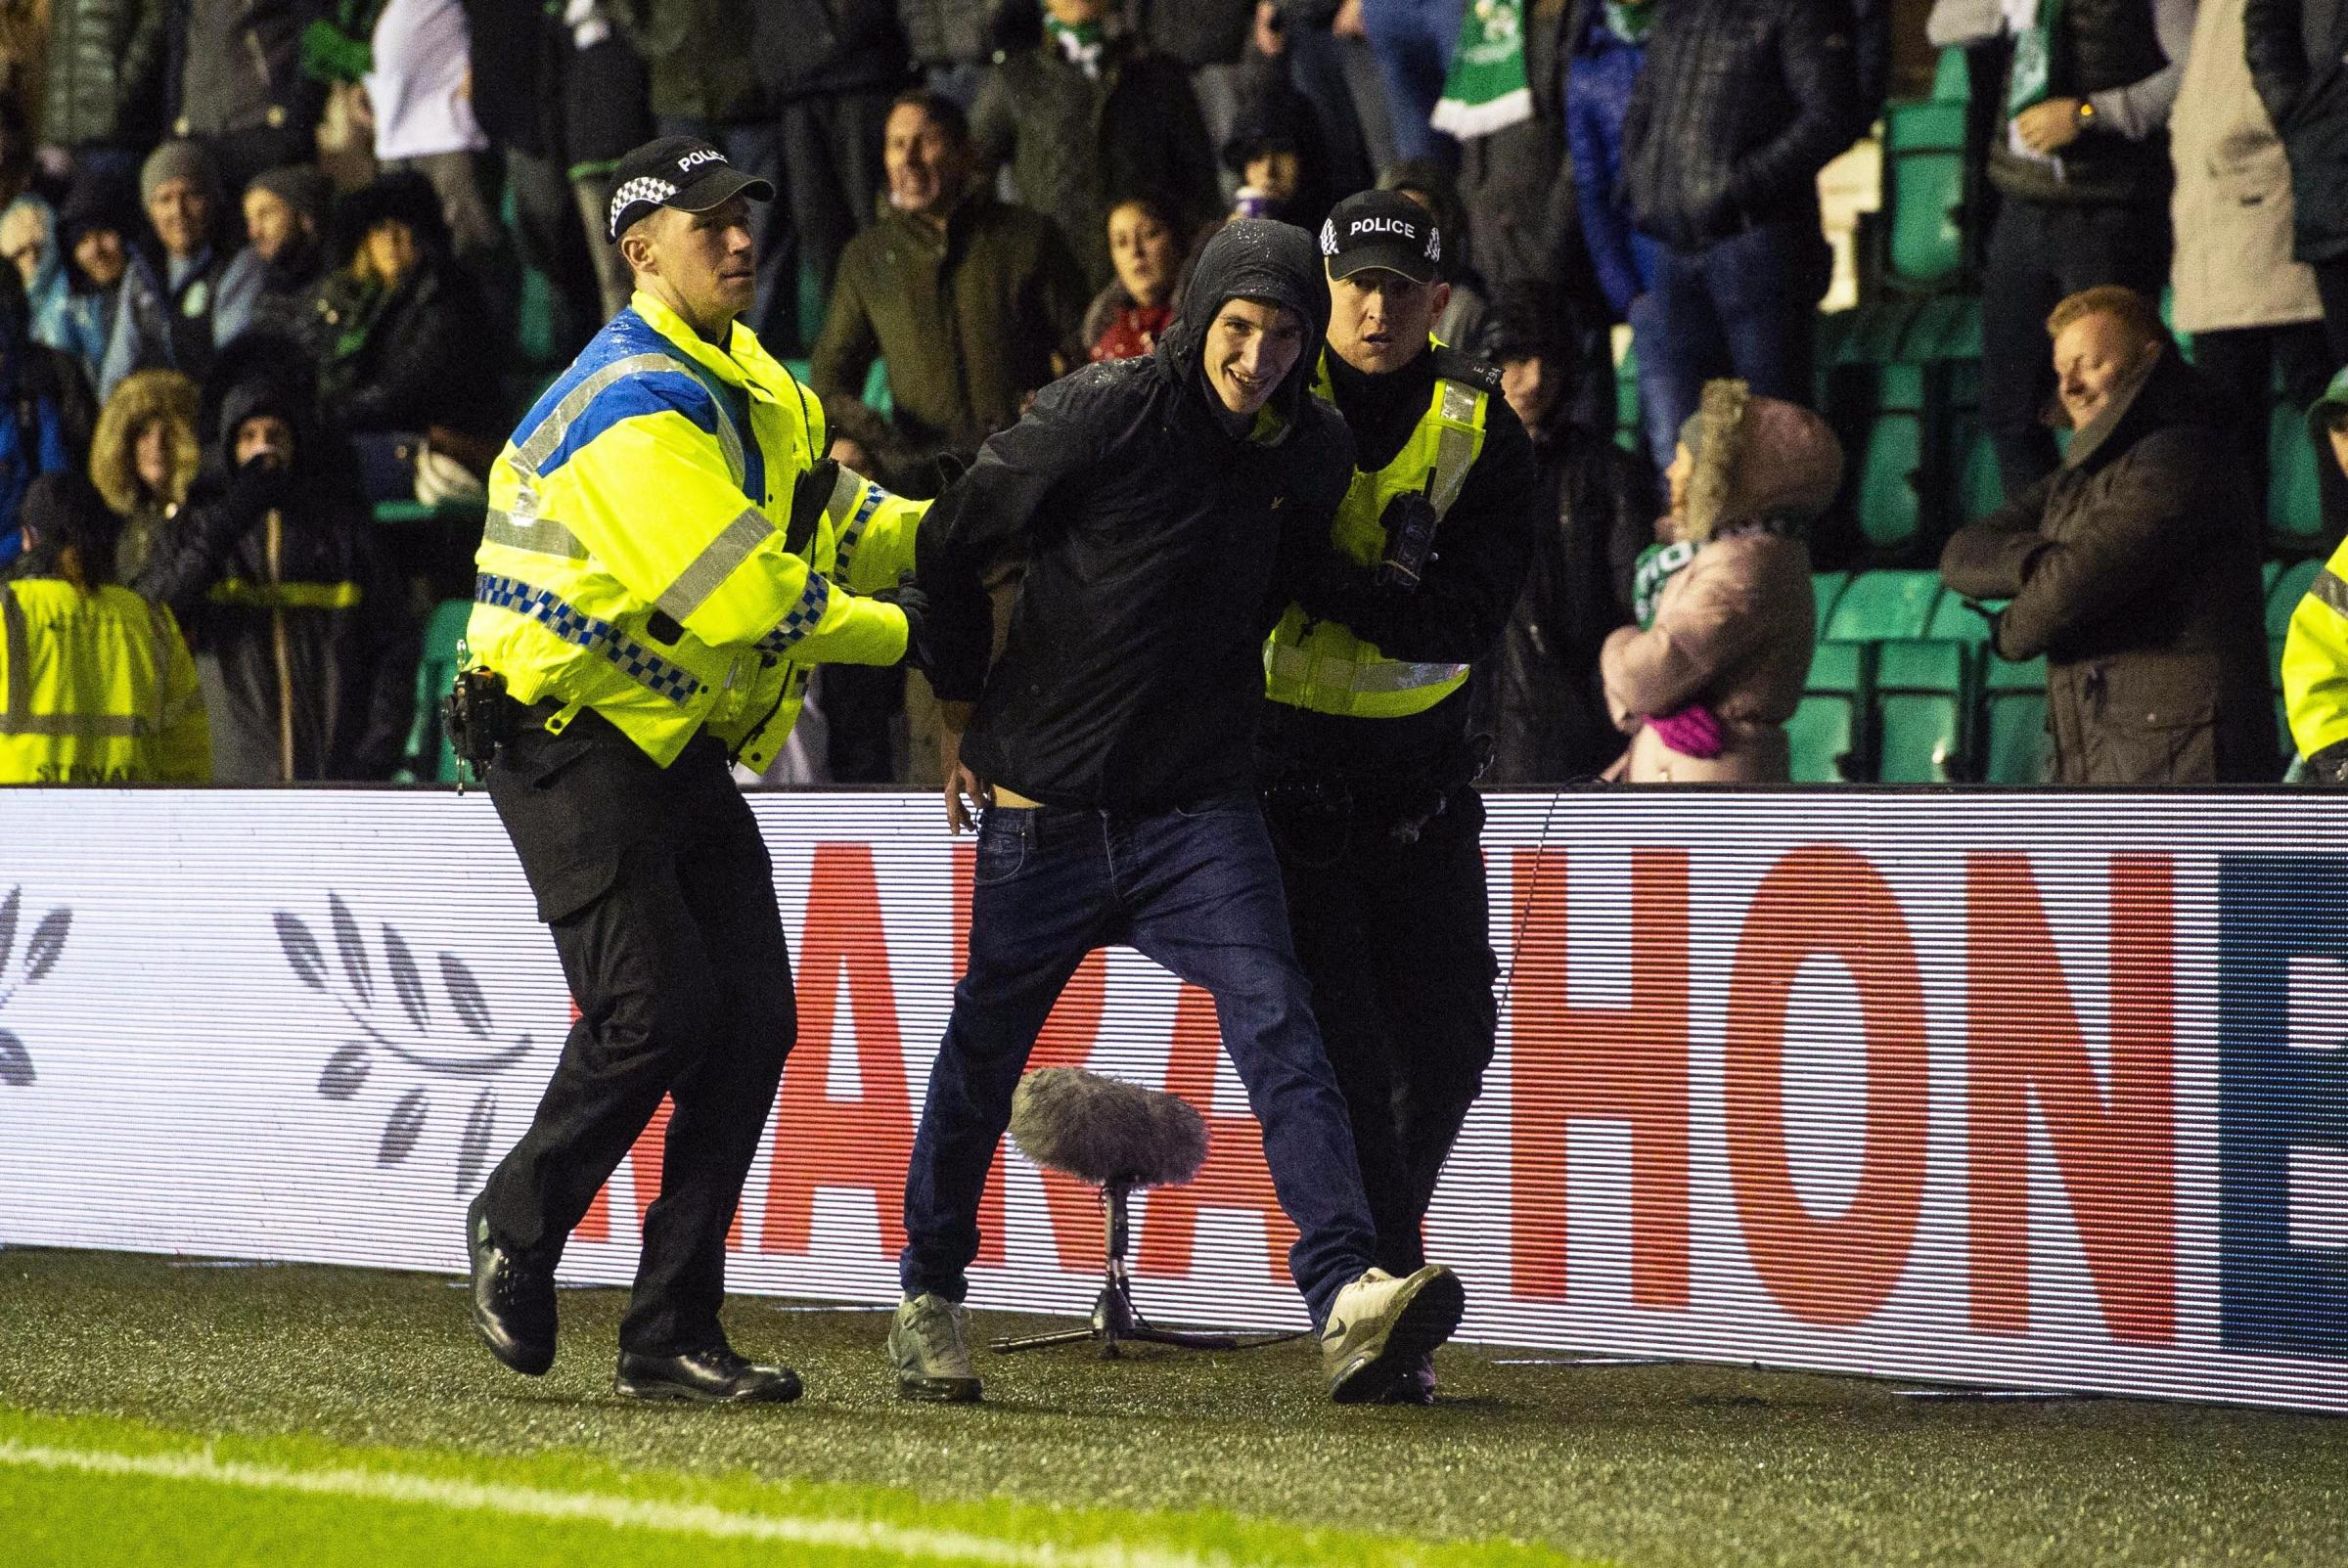 Police lead away the Hibernian fan who confronted Rangers captain James Tavernier.